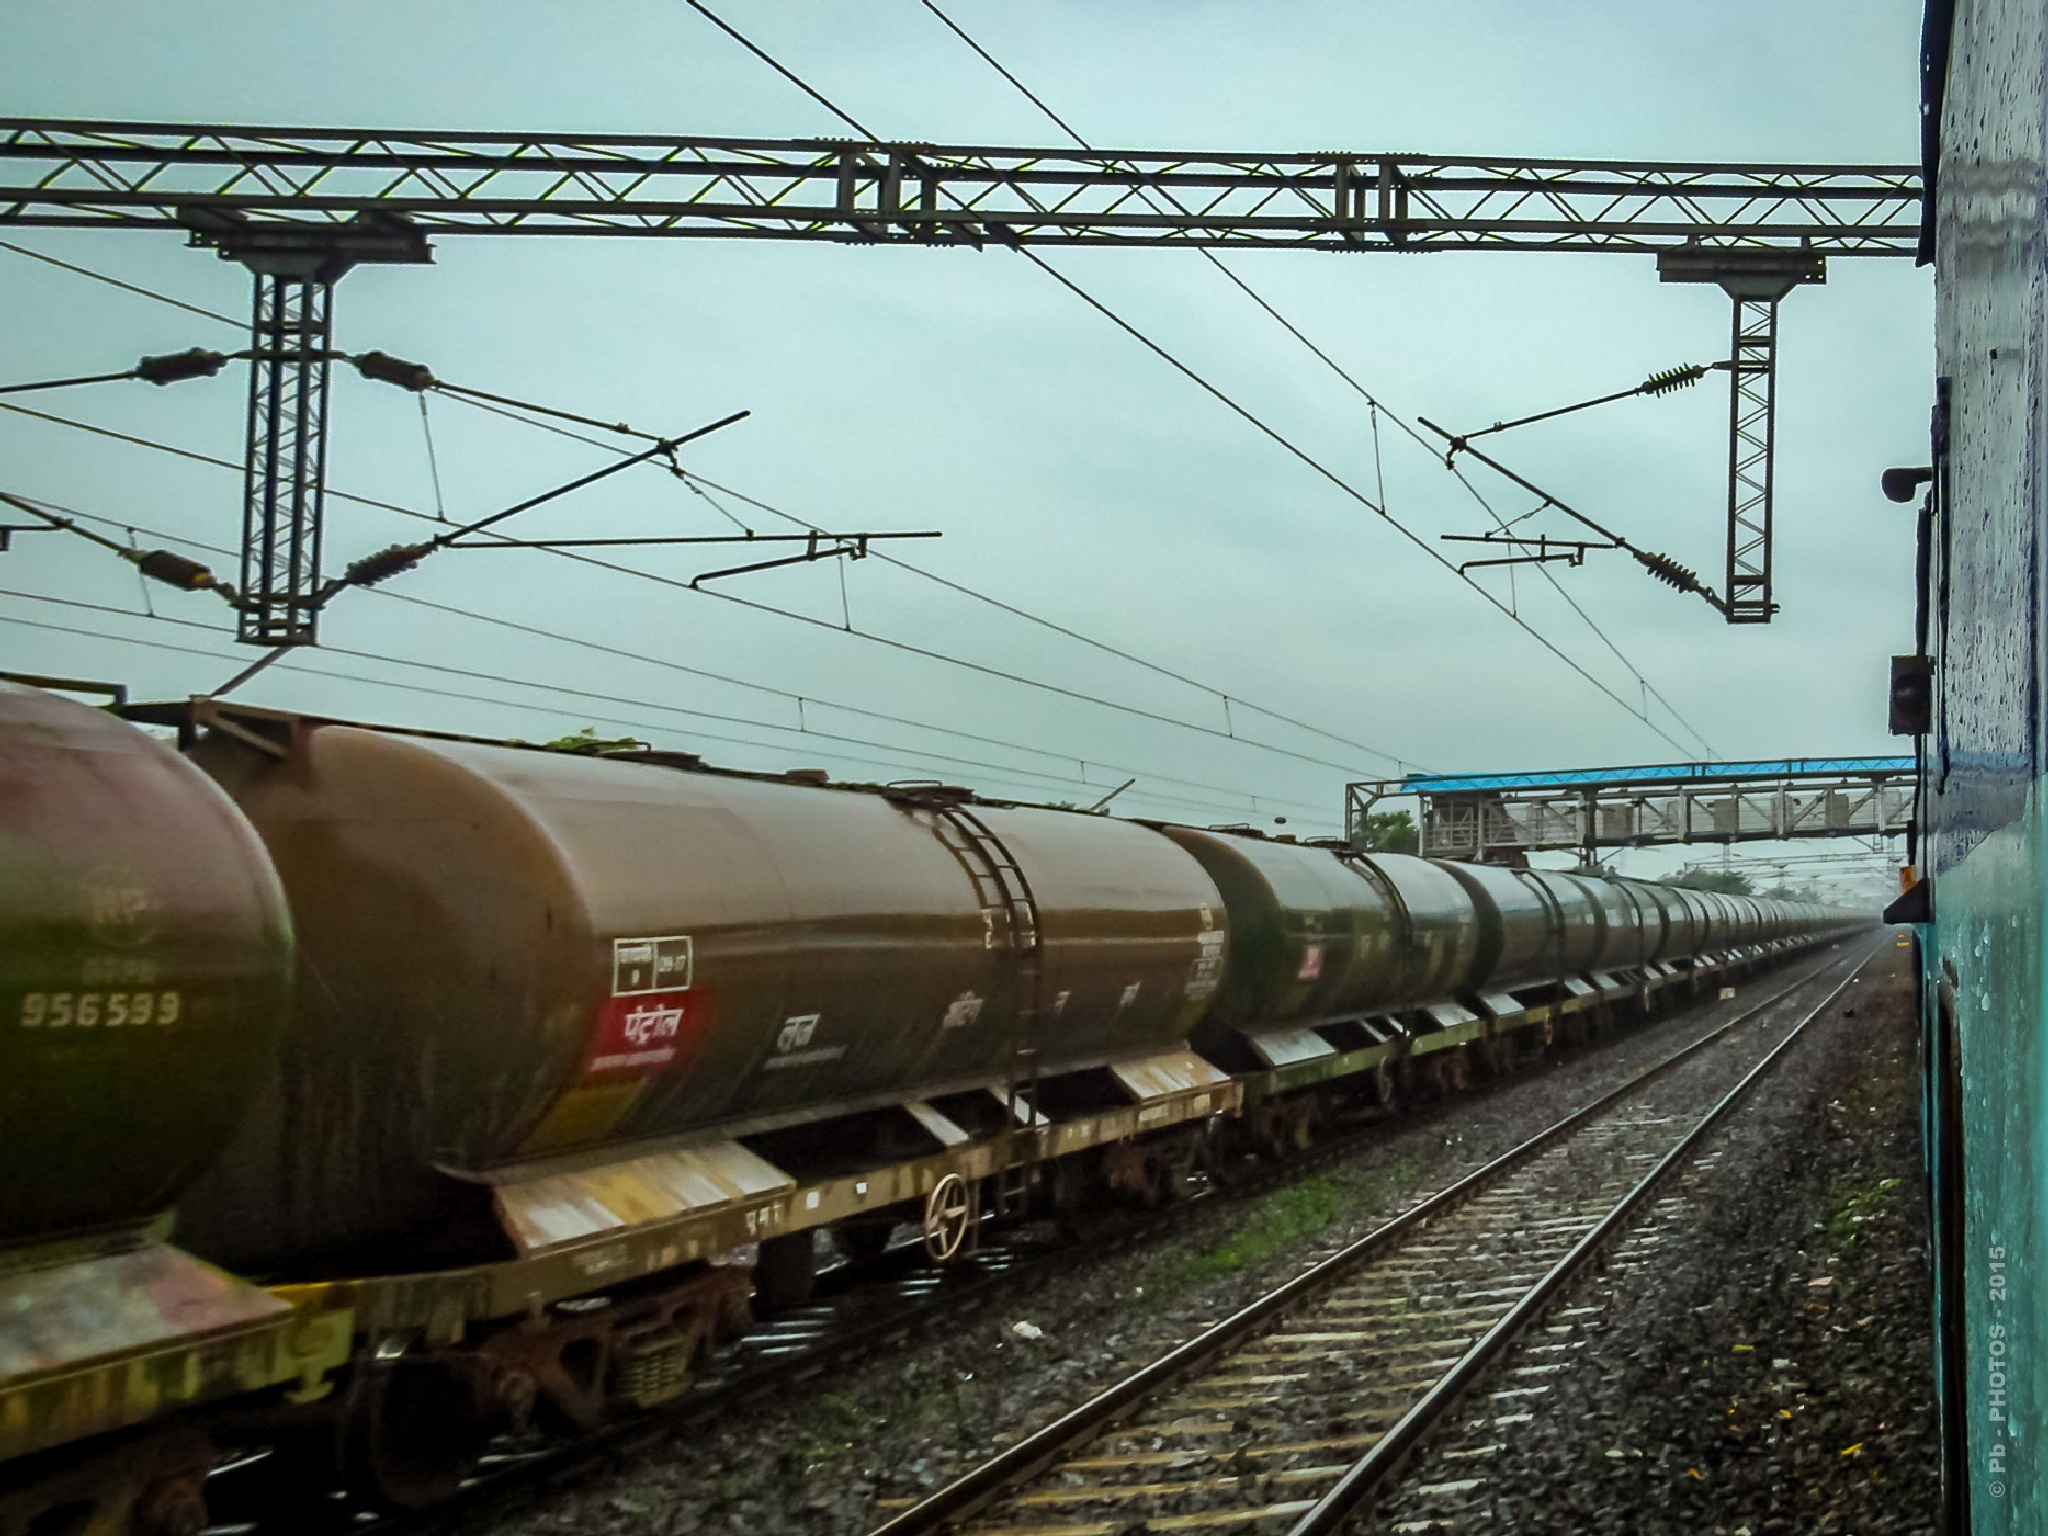 343 – FREIGHT TRAIN - RAW/ FINISH SUPPLY - INDUSTRIAL by Pb - PHOTOS